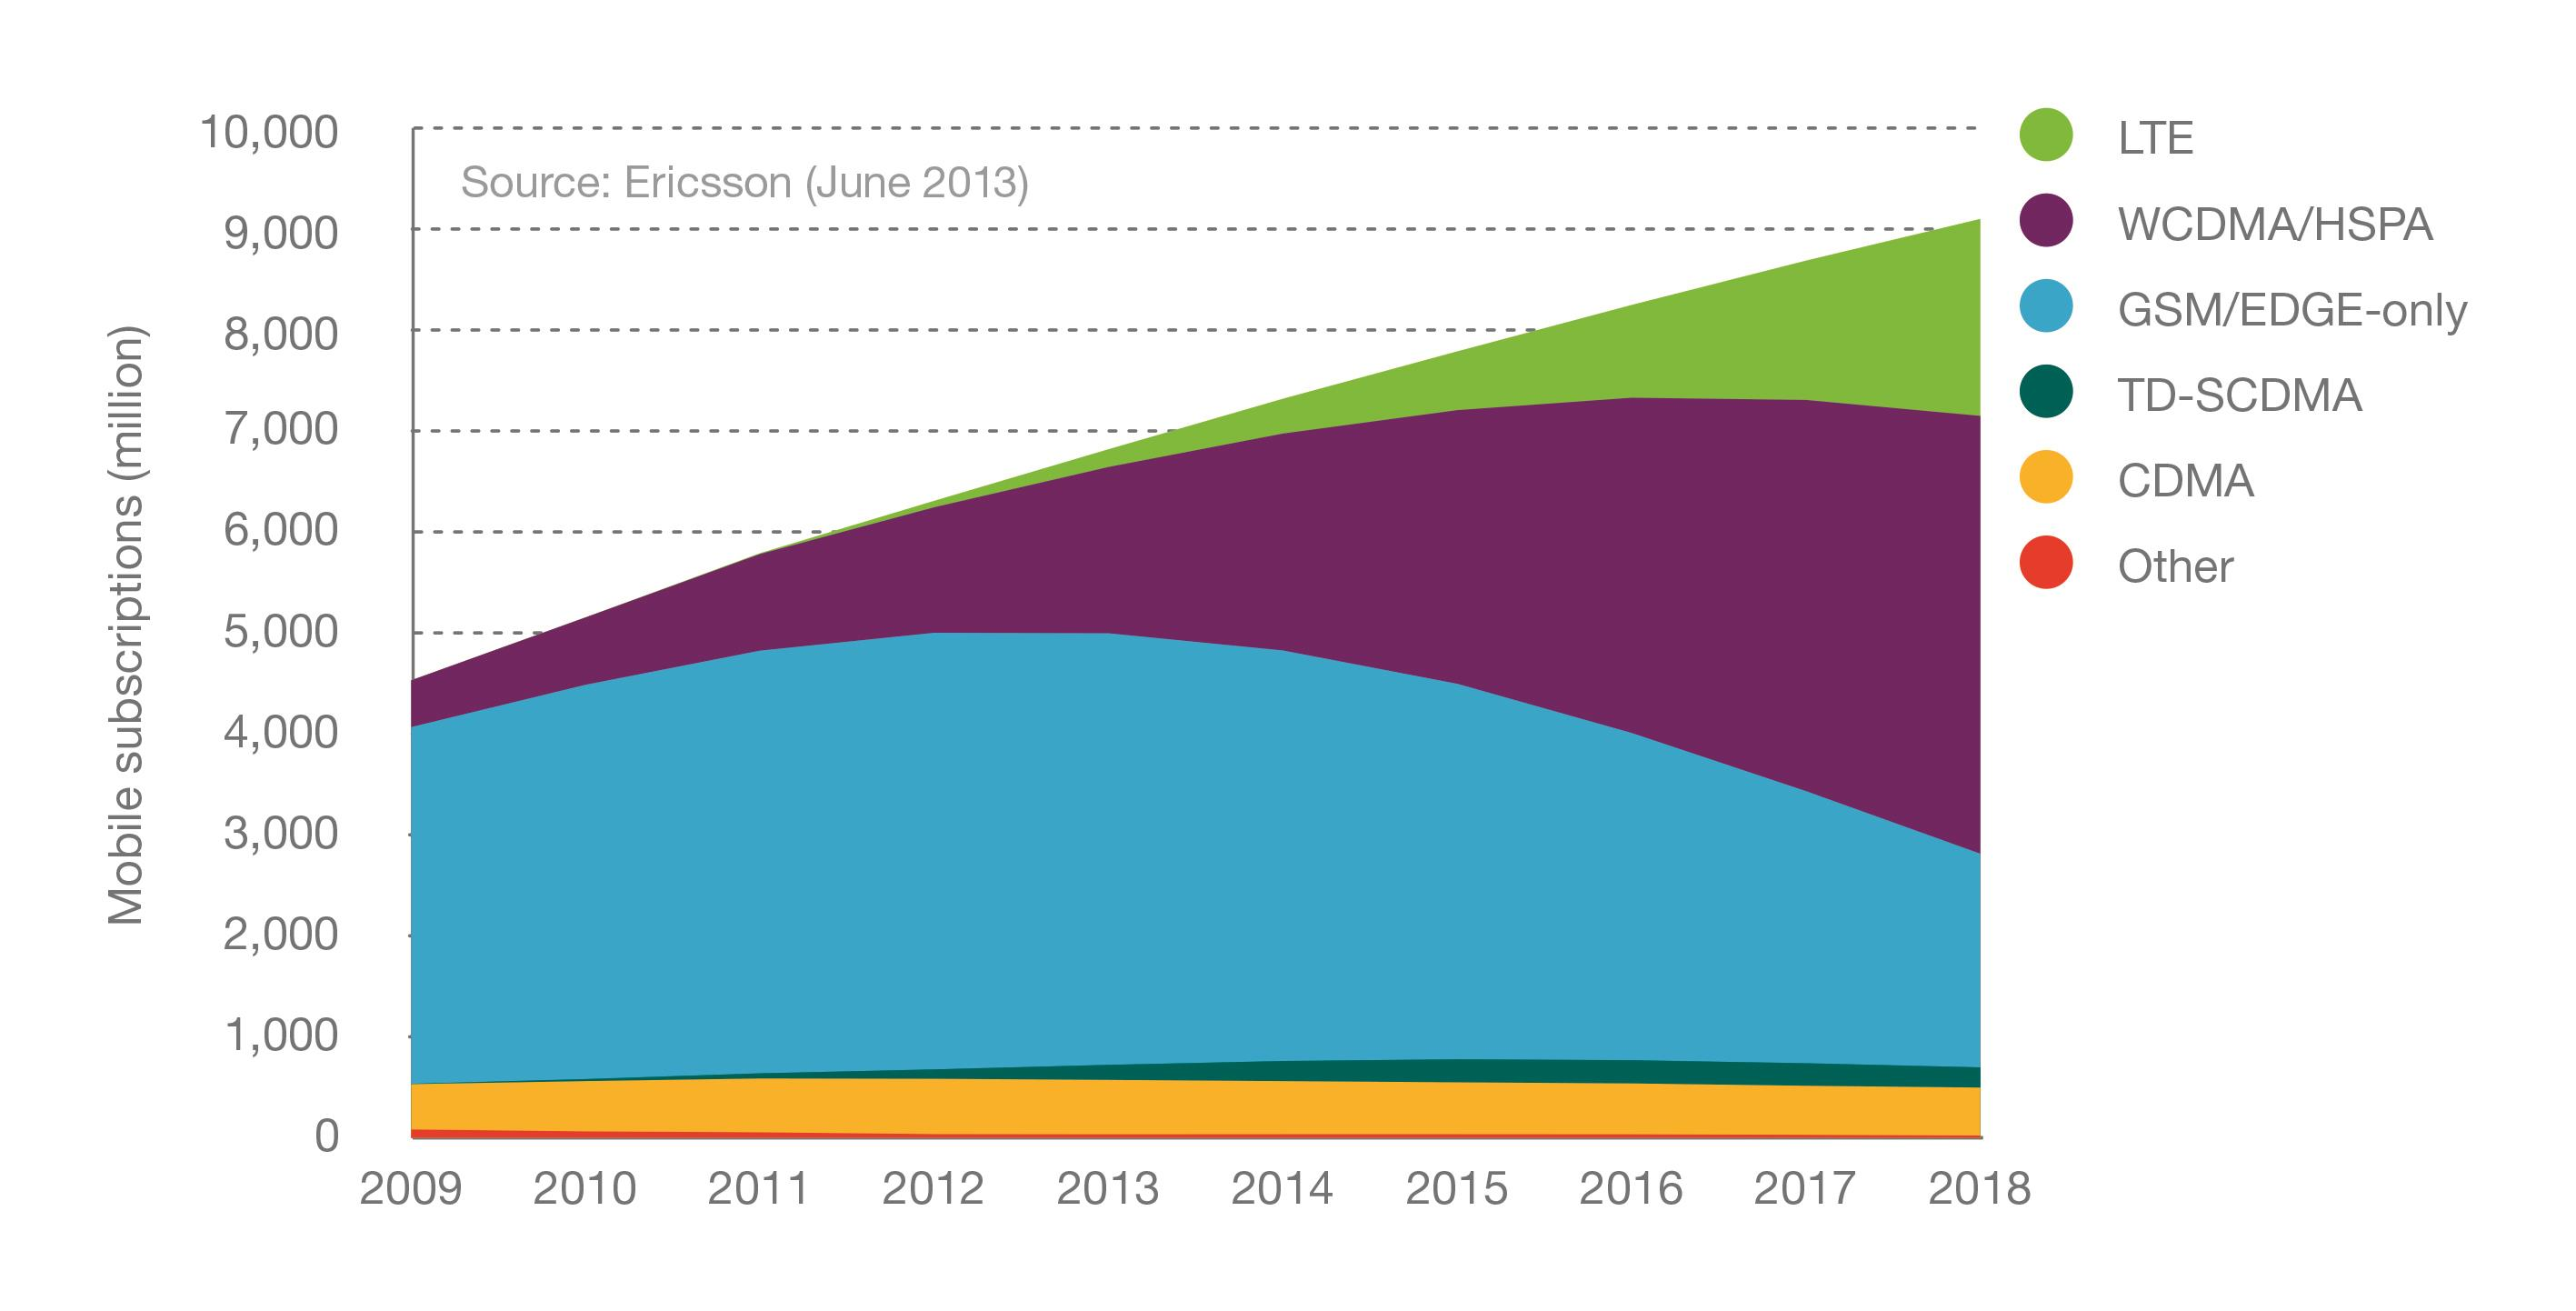 Figure 5: Mobile subscriptions by technology, 2009-2018